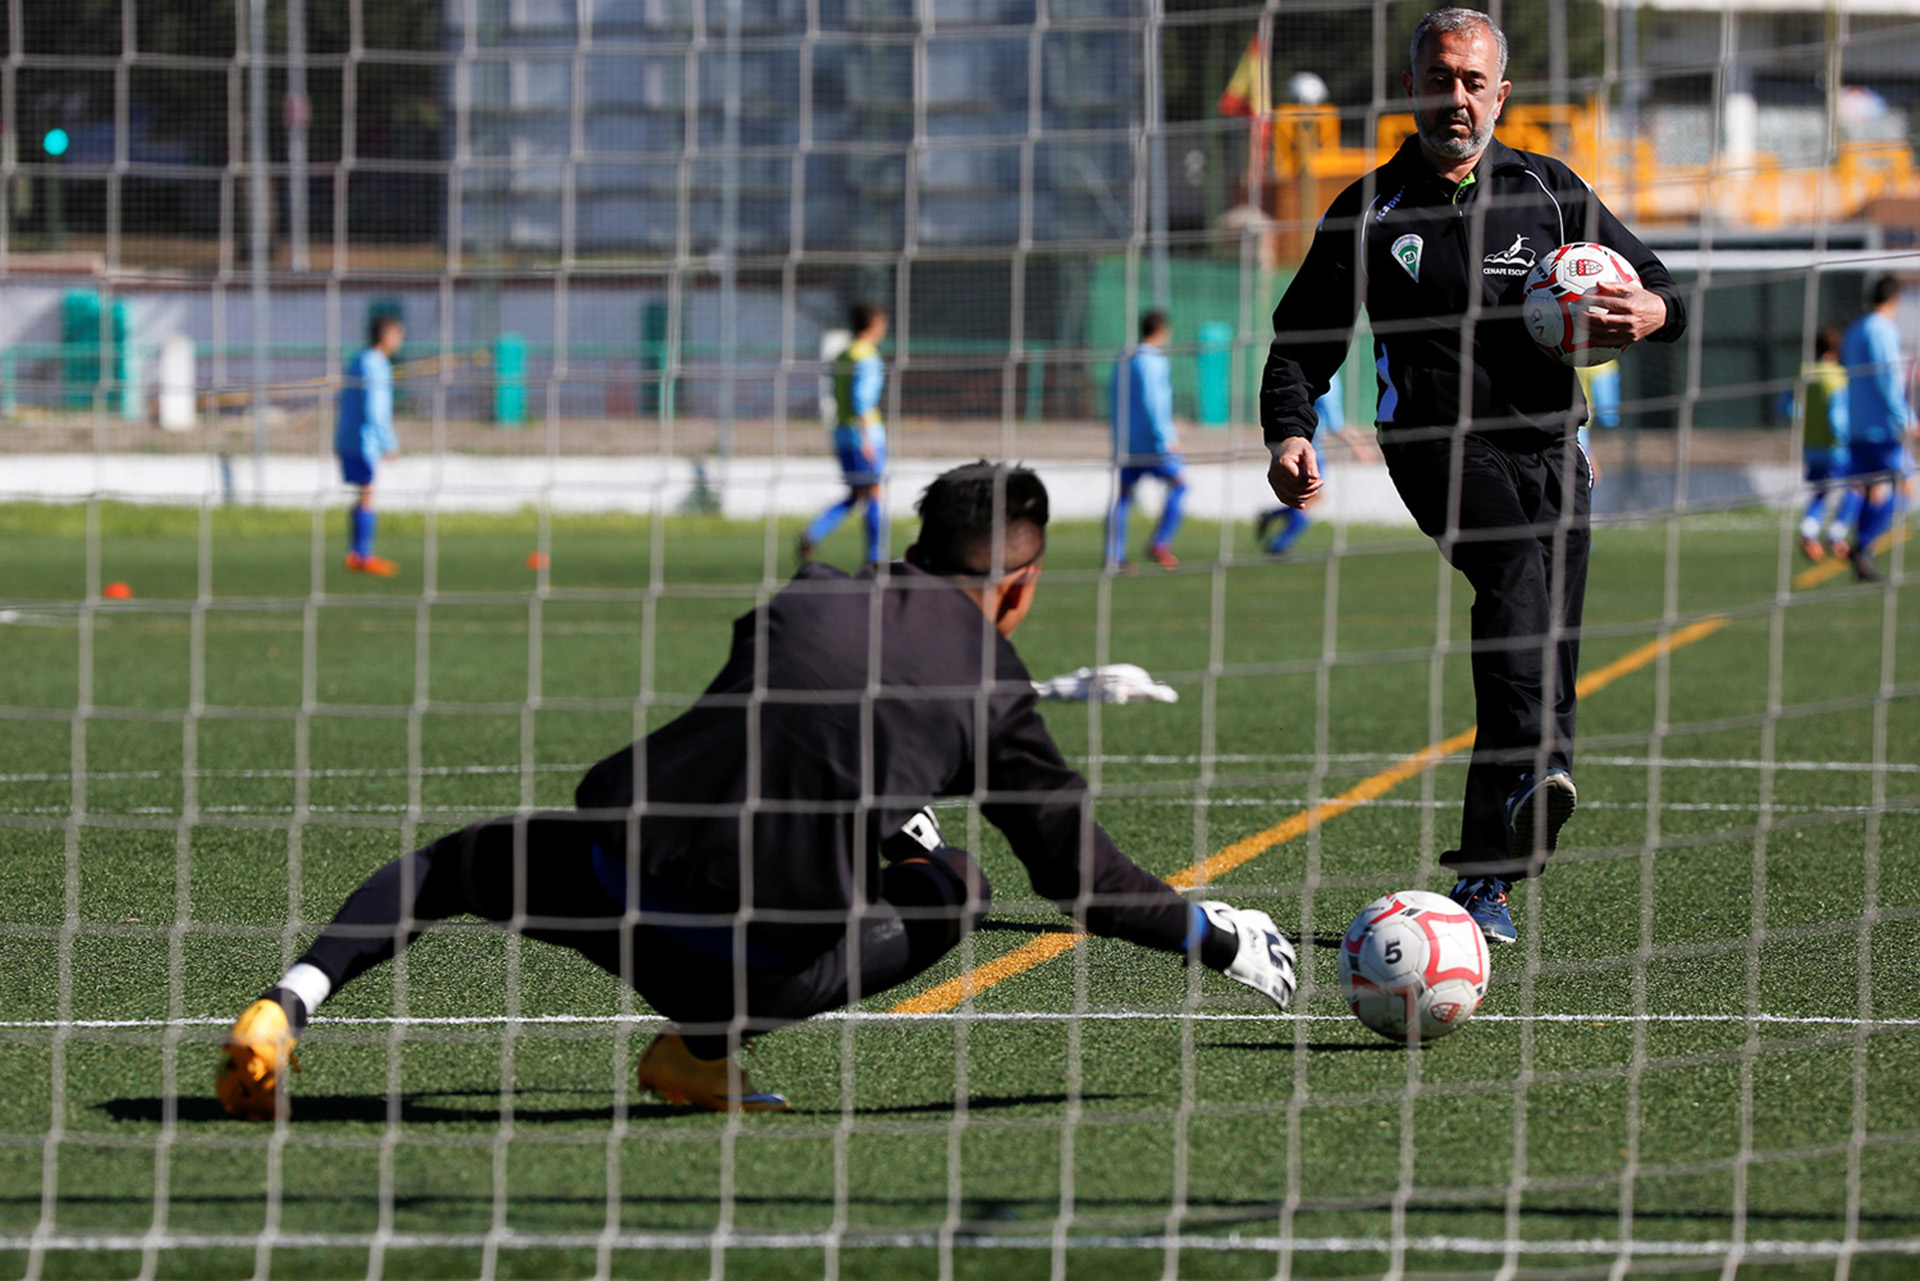 "Osama Abdul Mohsen, a Syrian refugee, warms up a goalkeeper before a soccer match with his junior team in Villaverde, a neighbourhood in Madrid, Spain, April 24, 2016. Mohsen's story went viral after he was filmed being tripped up by a camerawoman as he fled police near the Hungarian border with Serbia last September. He was carrying his youngest son Zaid in his arms at the time, and the two fell sprawling on the ground. Footage of the incident helped bring him to the attention of a soccer training school in Getafe on the outskirts of Madrid, which found him work as a liaison officer. REUTERS/Sergio Perez     SEARCH ""REFUGEE PEREZ"" FOR THIS STORY. SEARCH ""THE WIDER IMAGE"" FOR ALL STORIES   - RTX2CXCS"